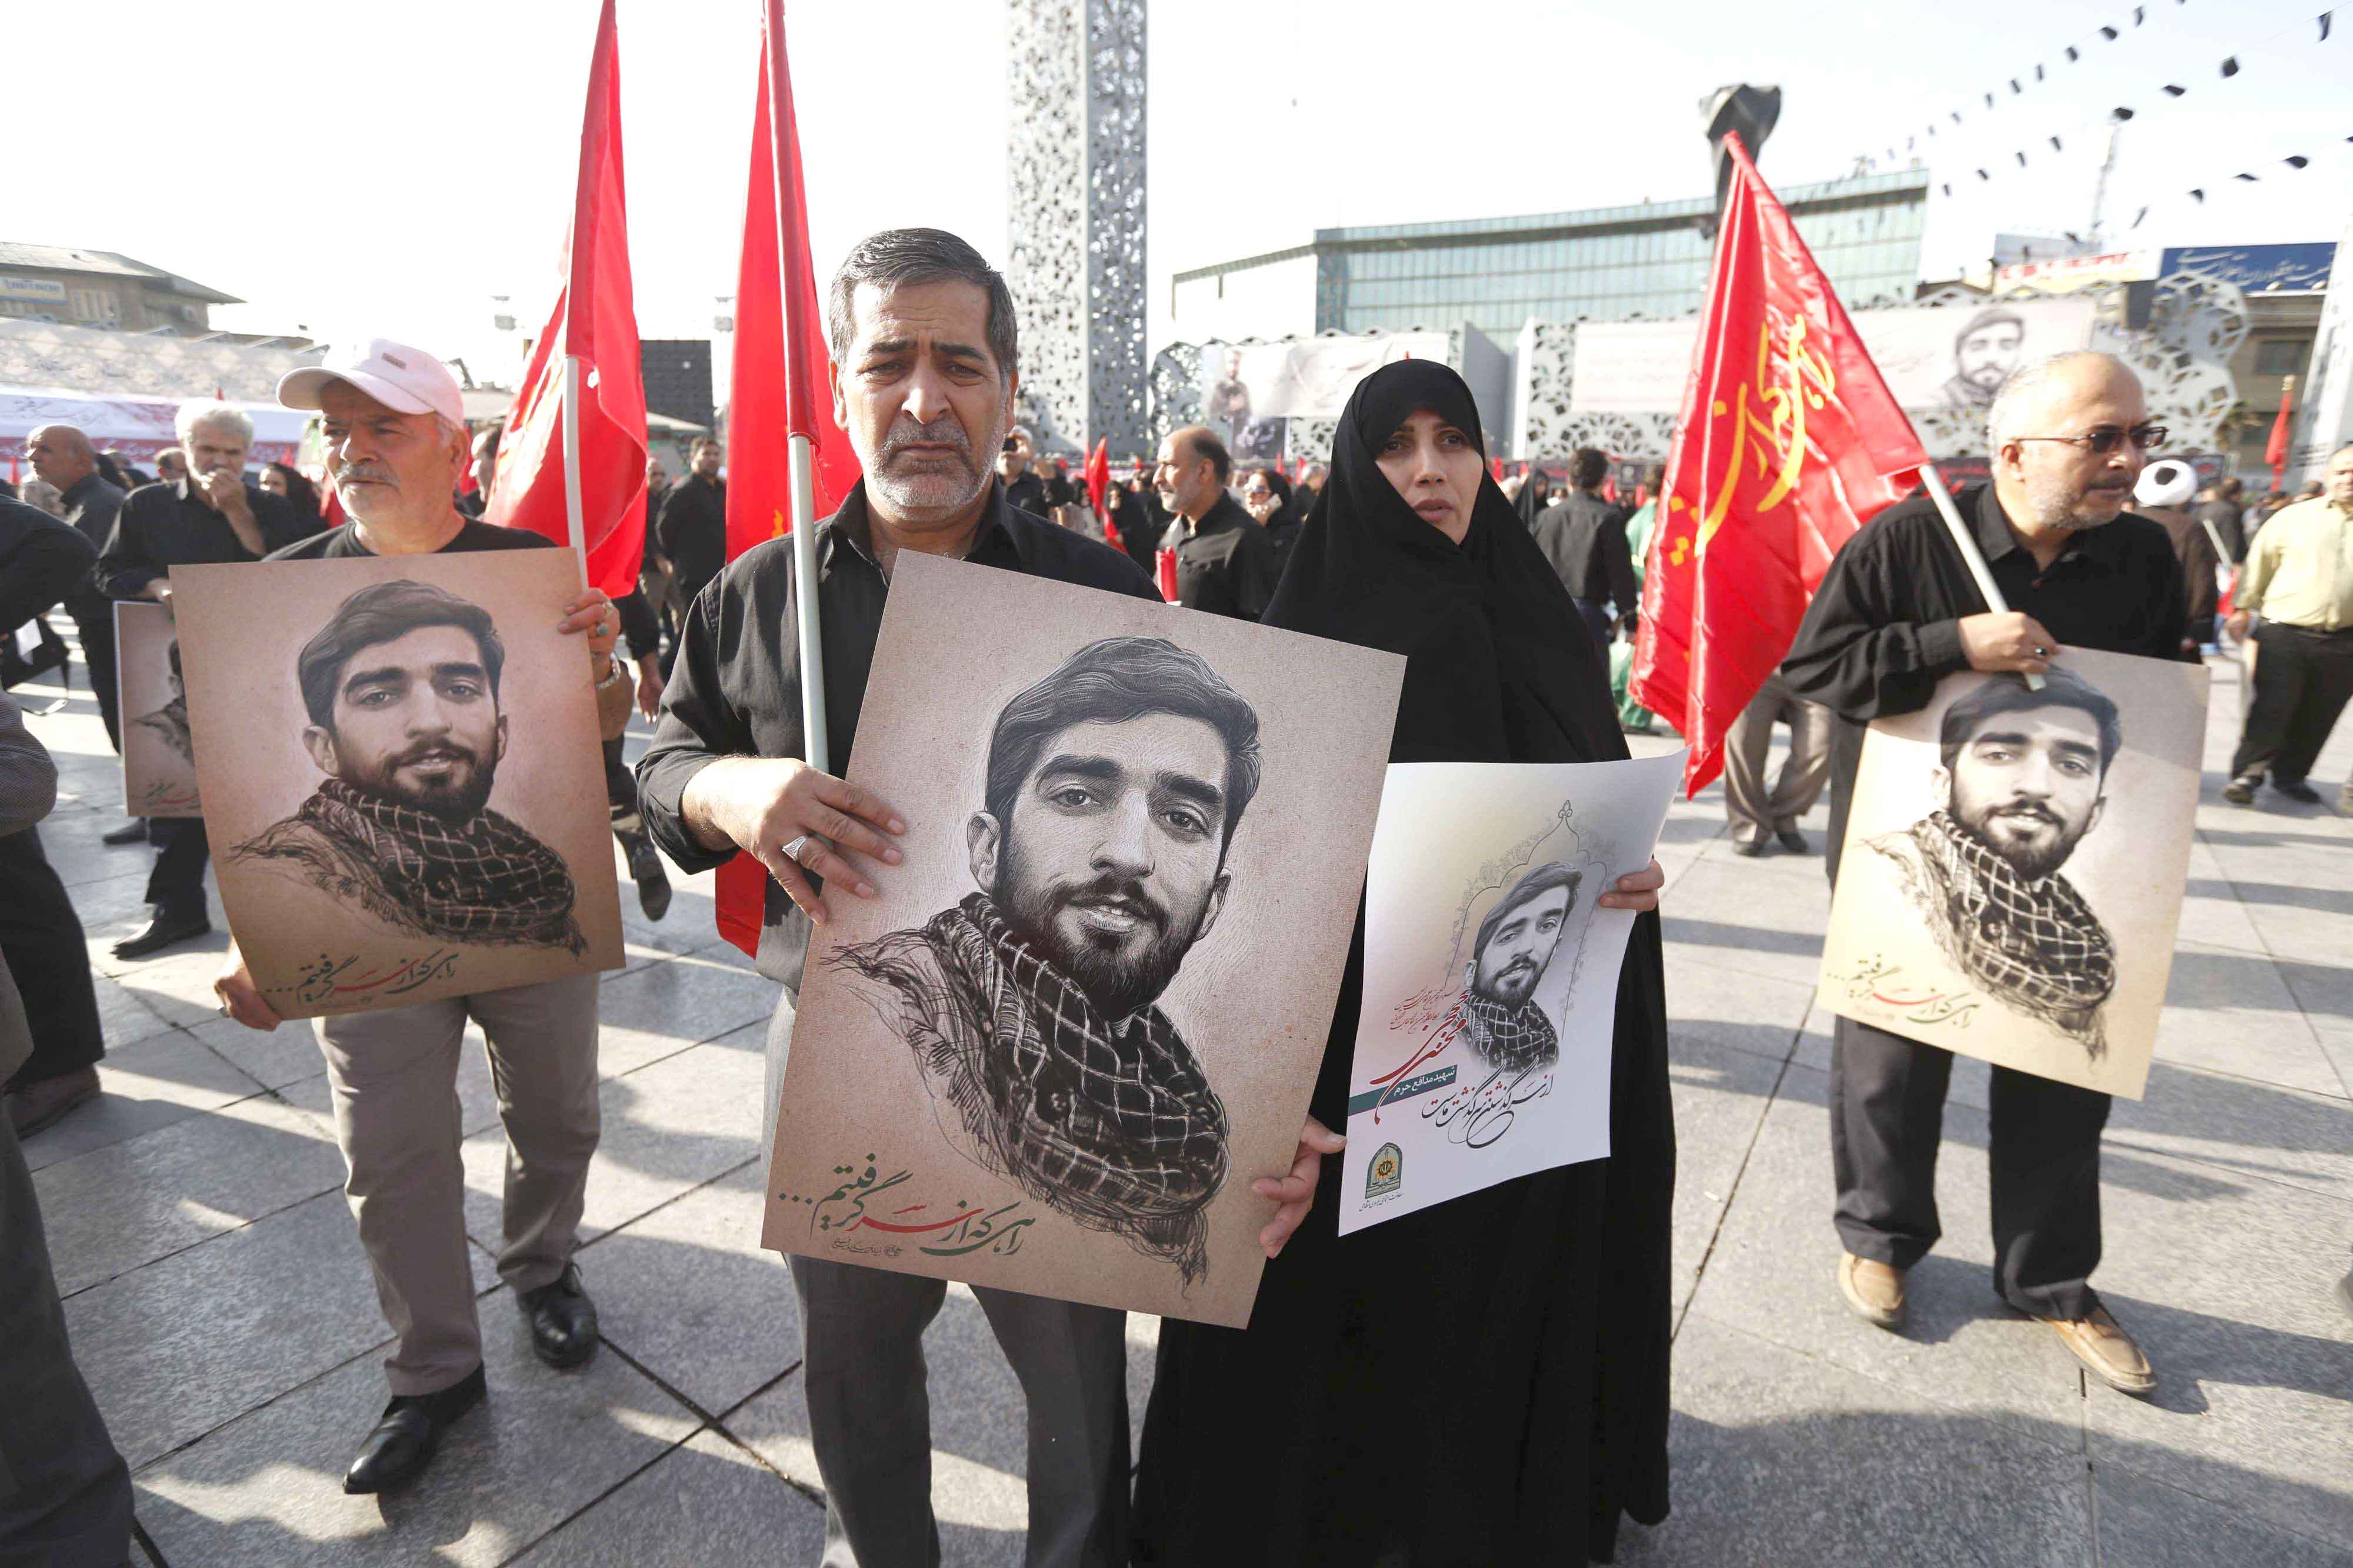 Iranian mourners hold portraits of a young member of Iran's Islamic Revolutionary Guard Corps (IRGC) who was killed in Syria. (AFP)